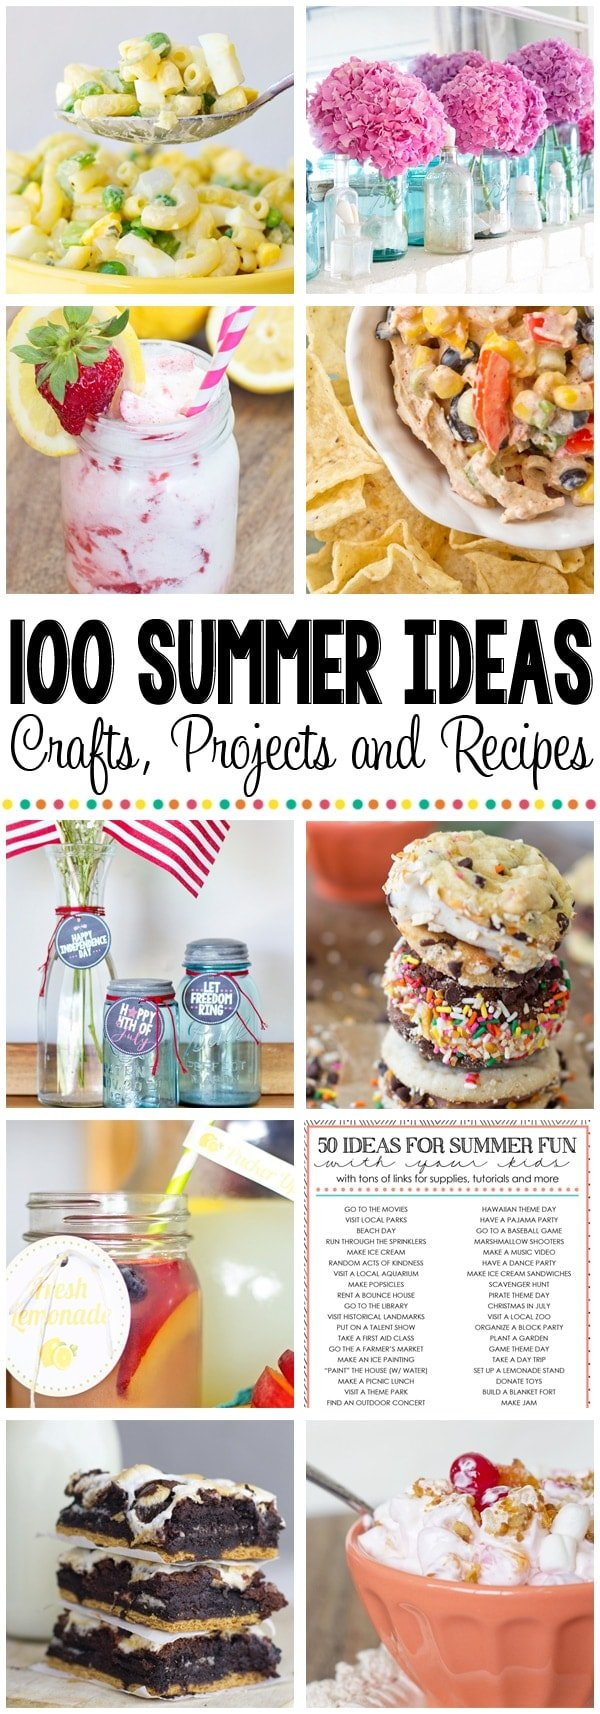 100 Summer Ideas Collage